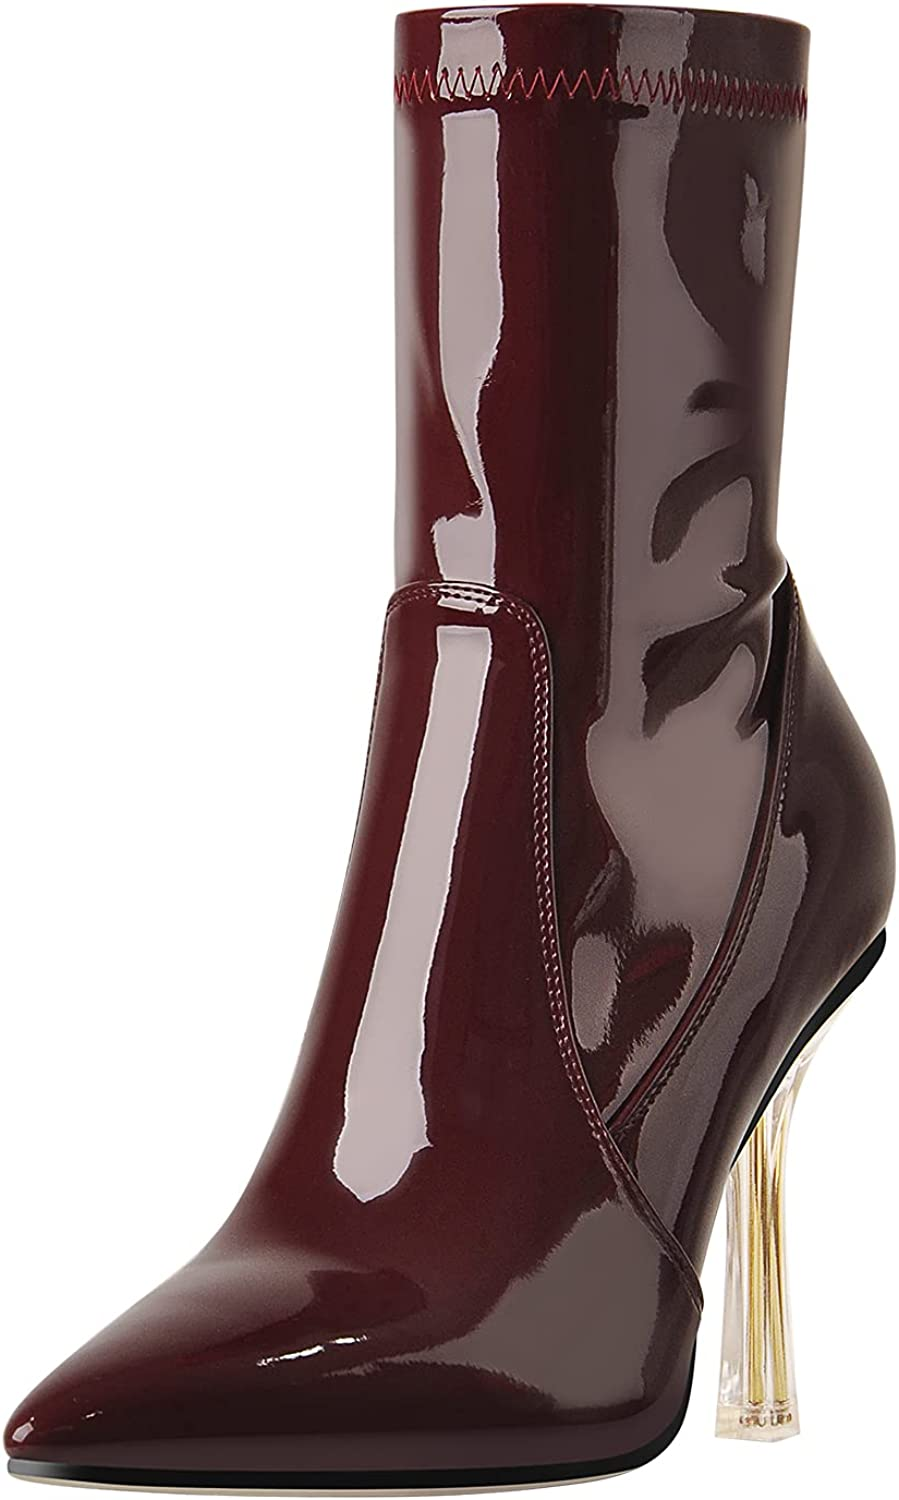 LISHAN Women's Pointed Toe Directly managed store Zip Up Heel High Finally popular brand Boots Ankle